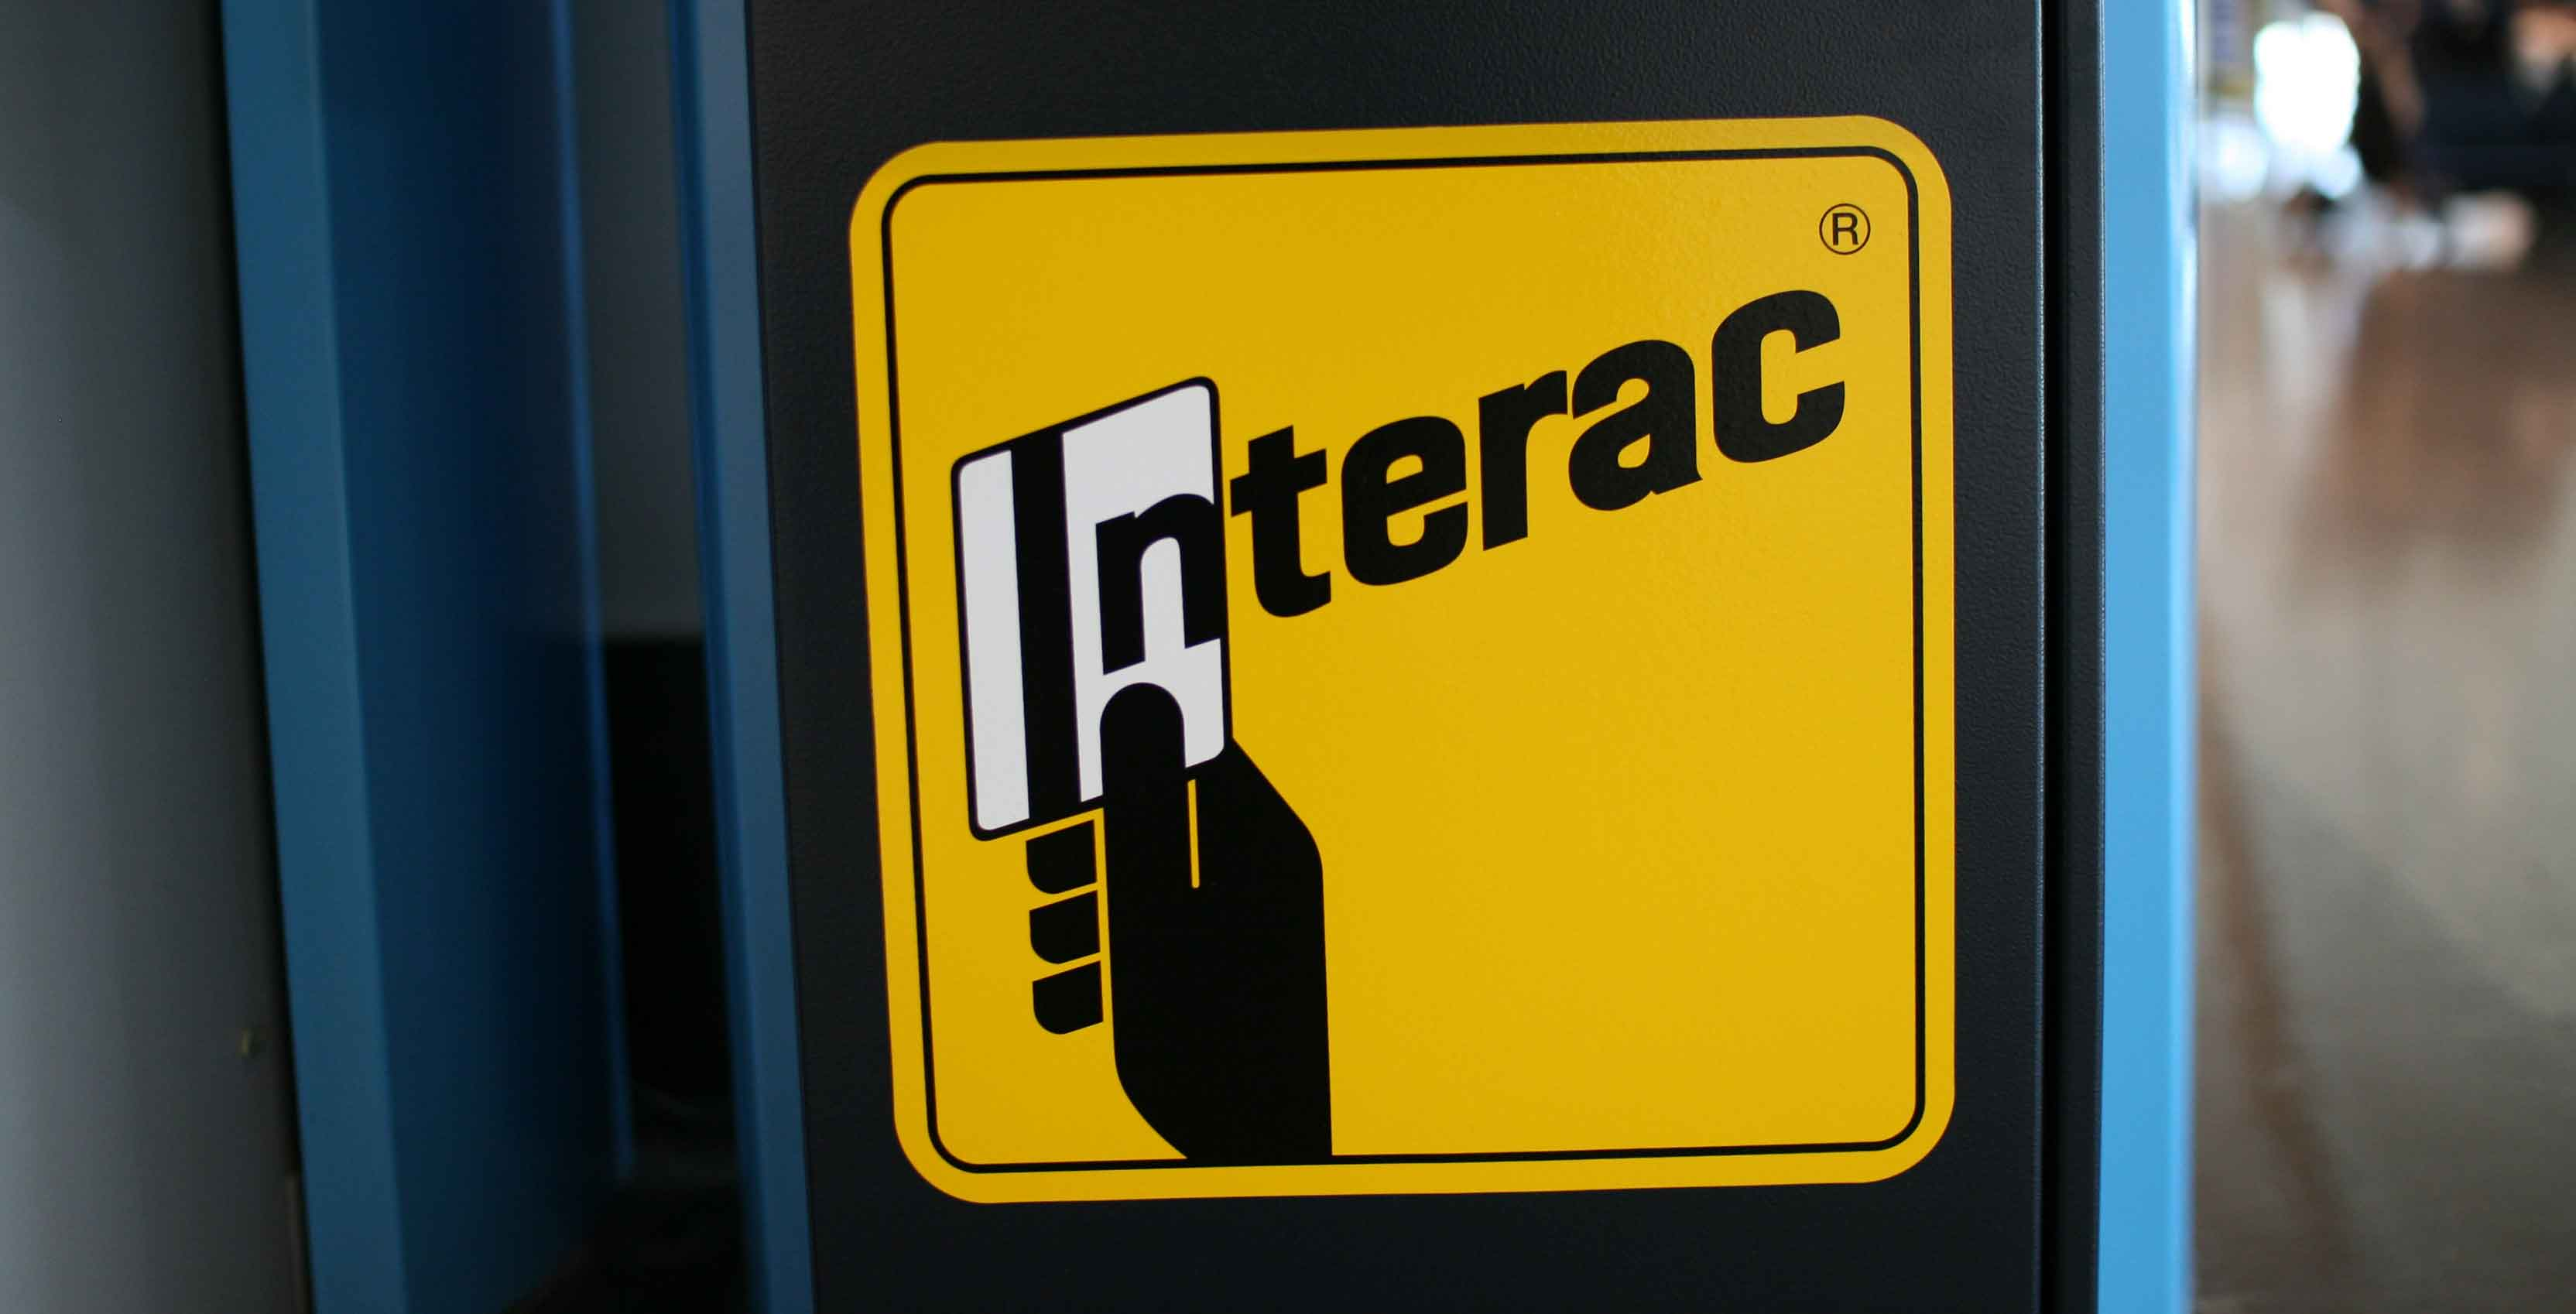 interac sticker on the wall